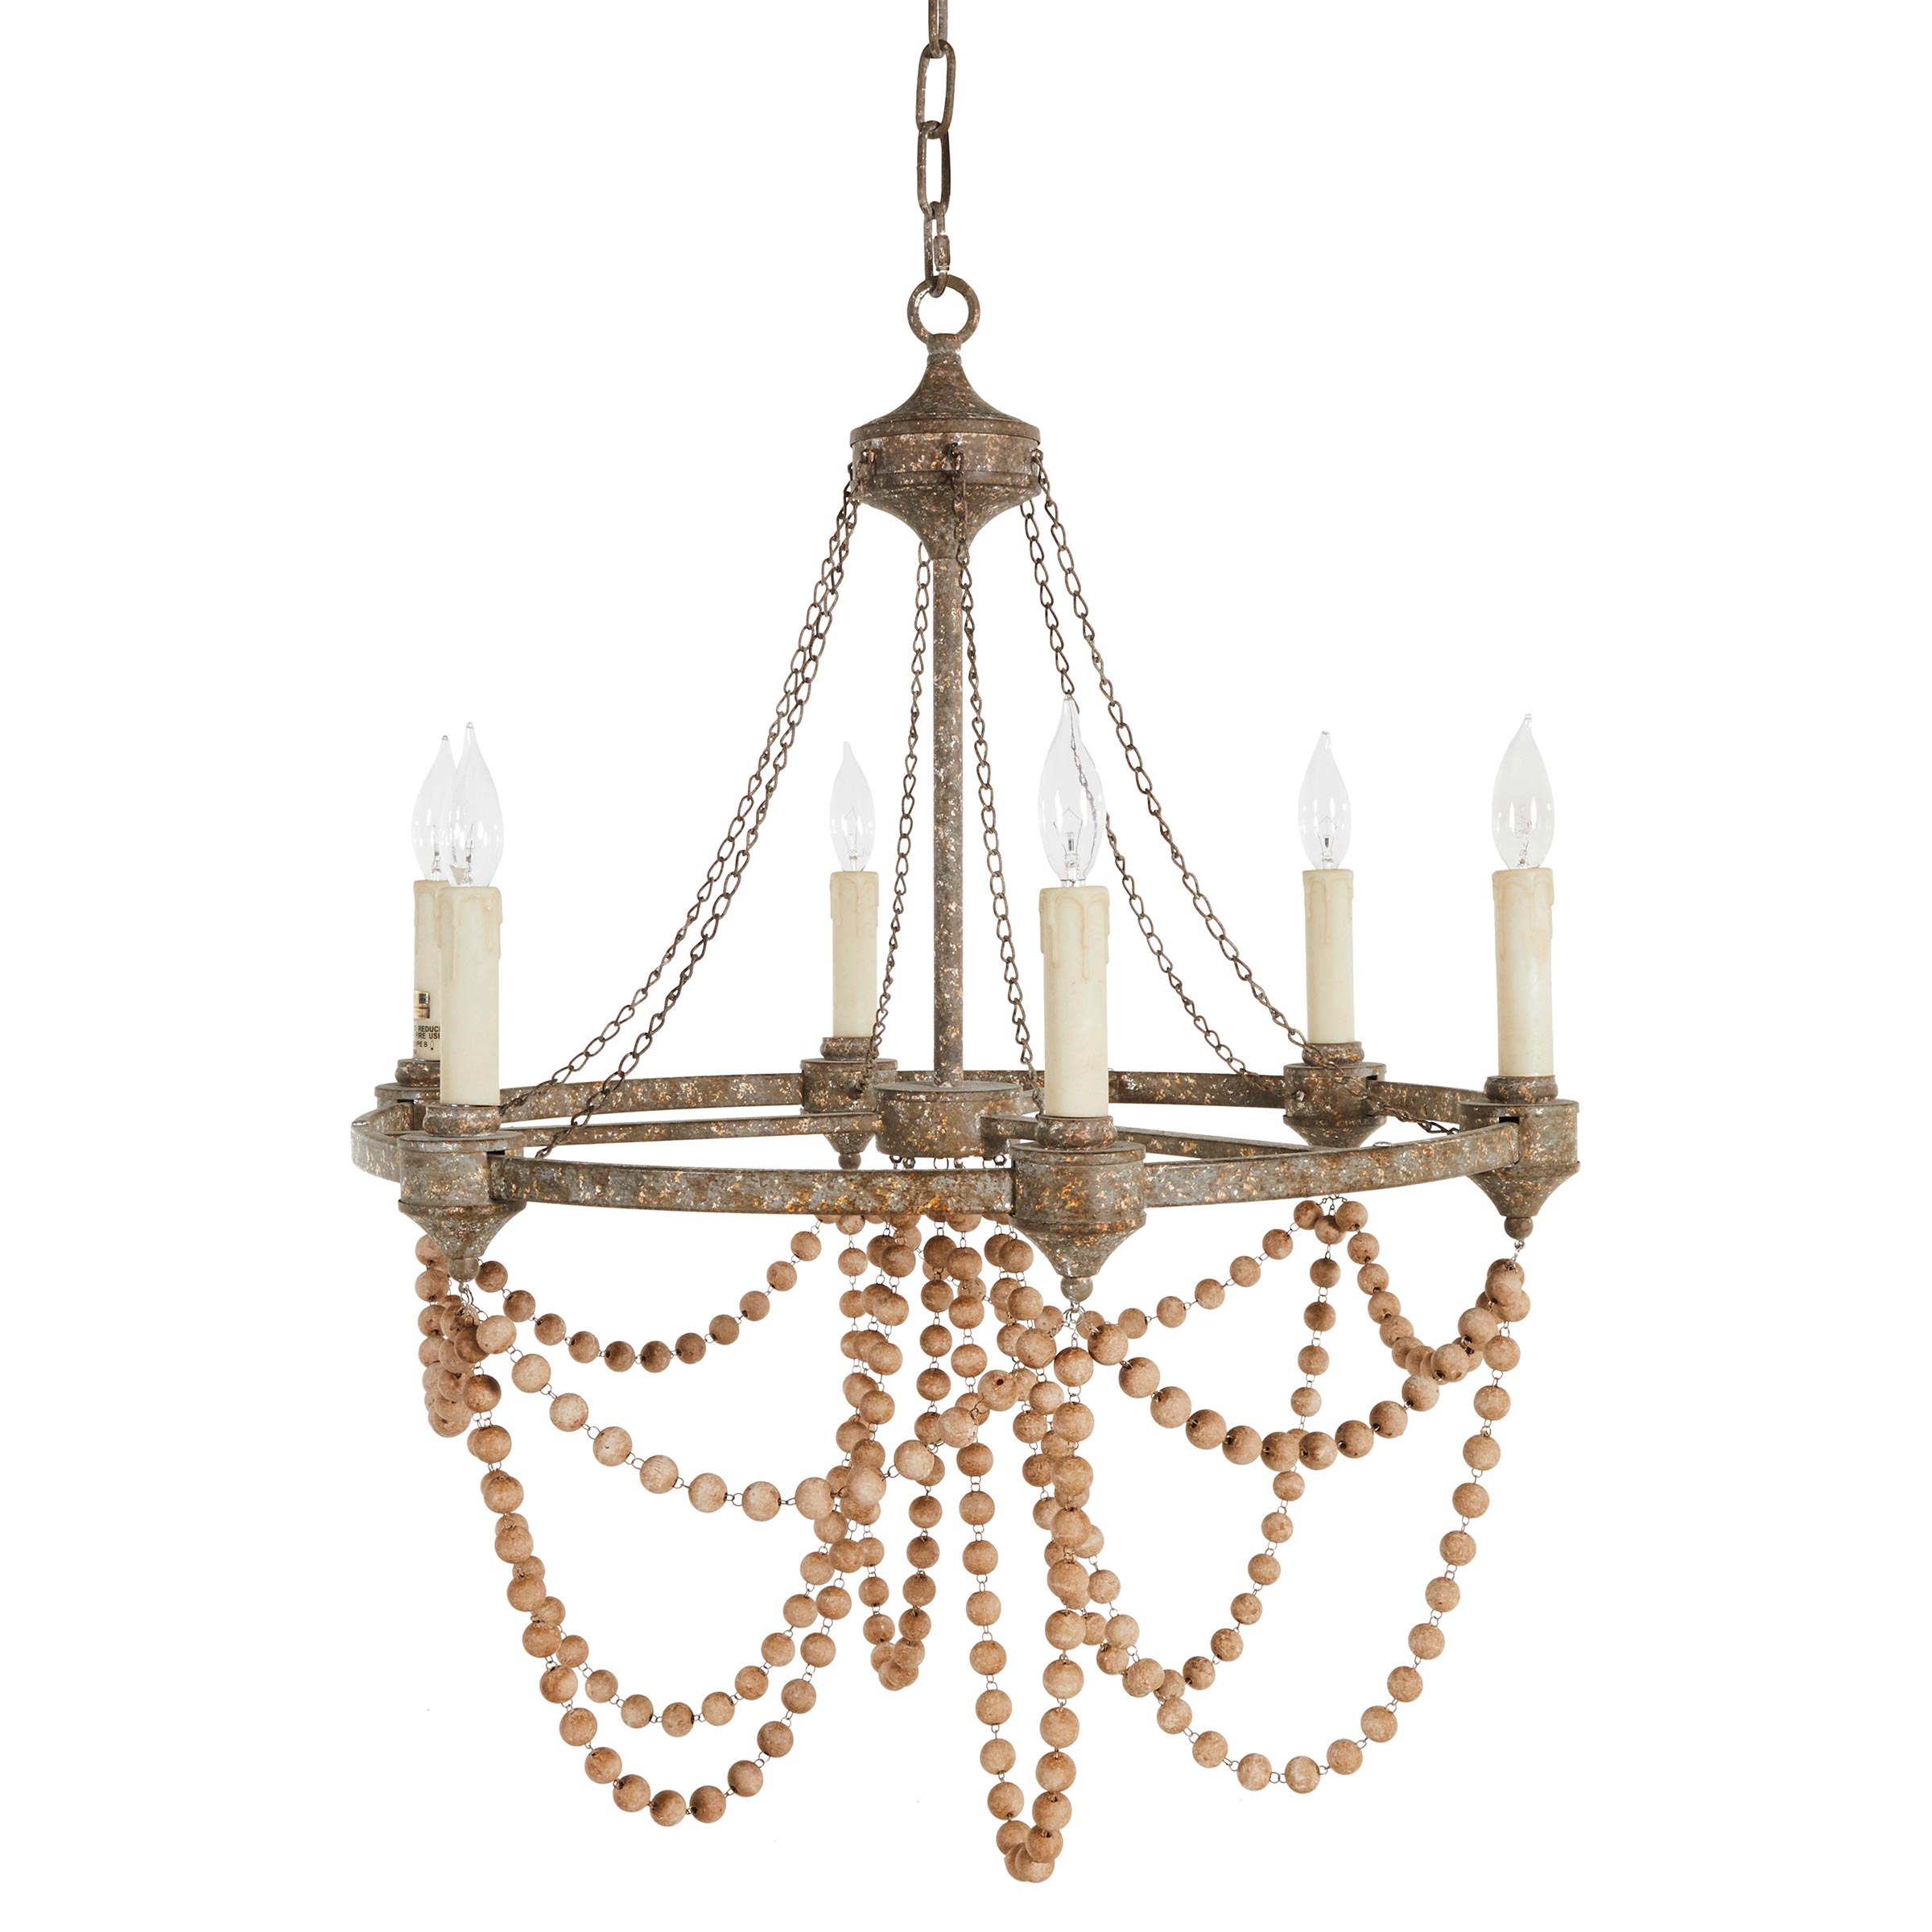 French country kathy kuo home auvergne french country rustic iron white bead chandelier aloadofball Choice Image